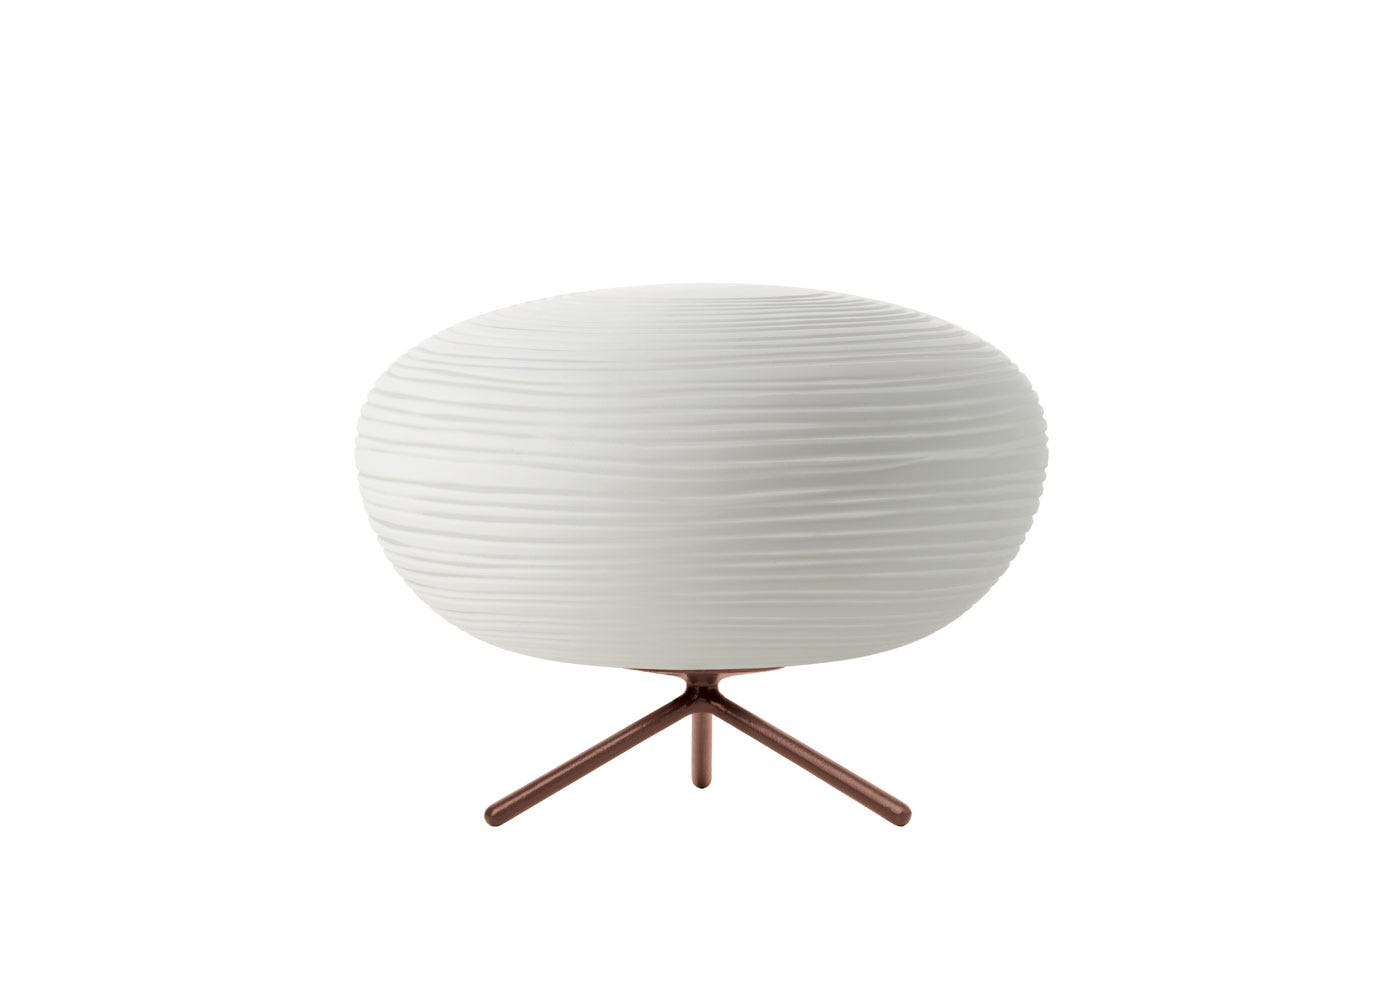 As shown: Rituals Table Lamp 2.